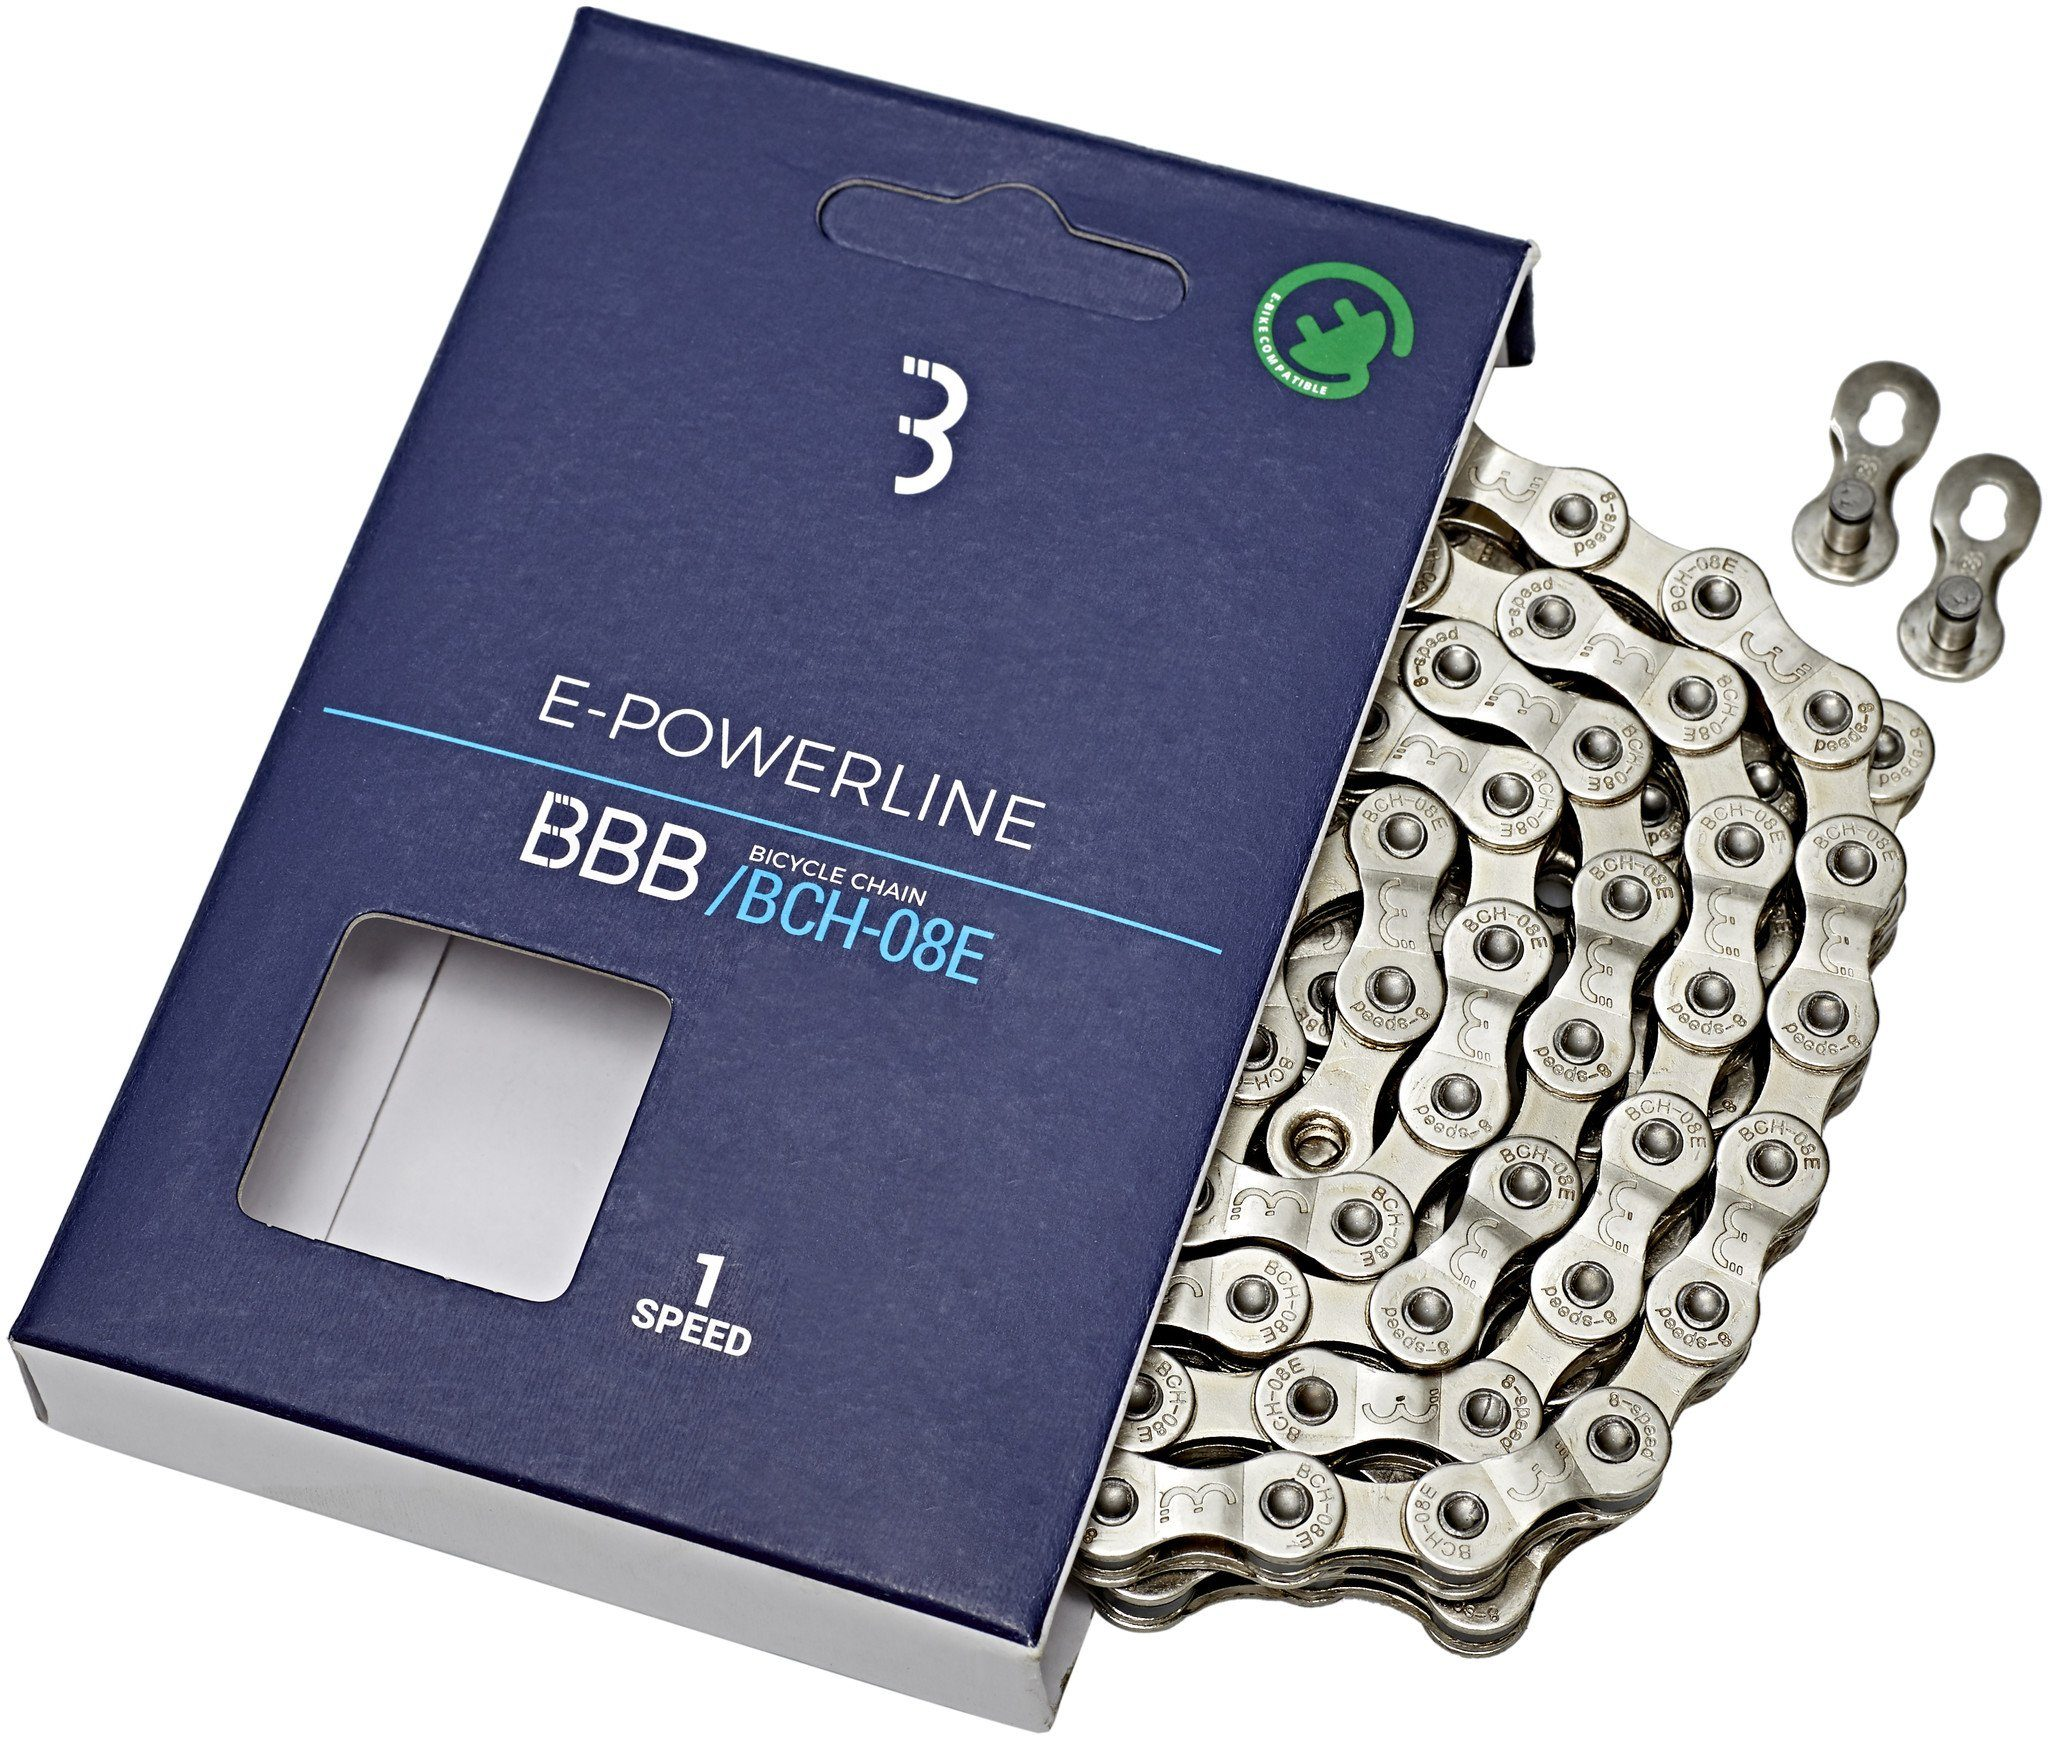 BBB Ketten »E-Powerline E-Bike BCH-01E Kette Singlespeed«